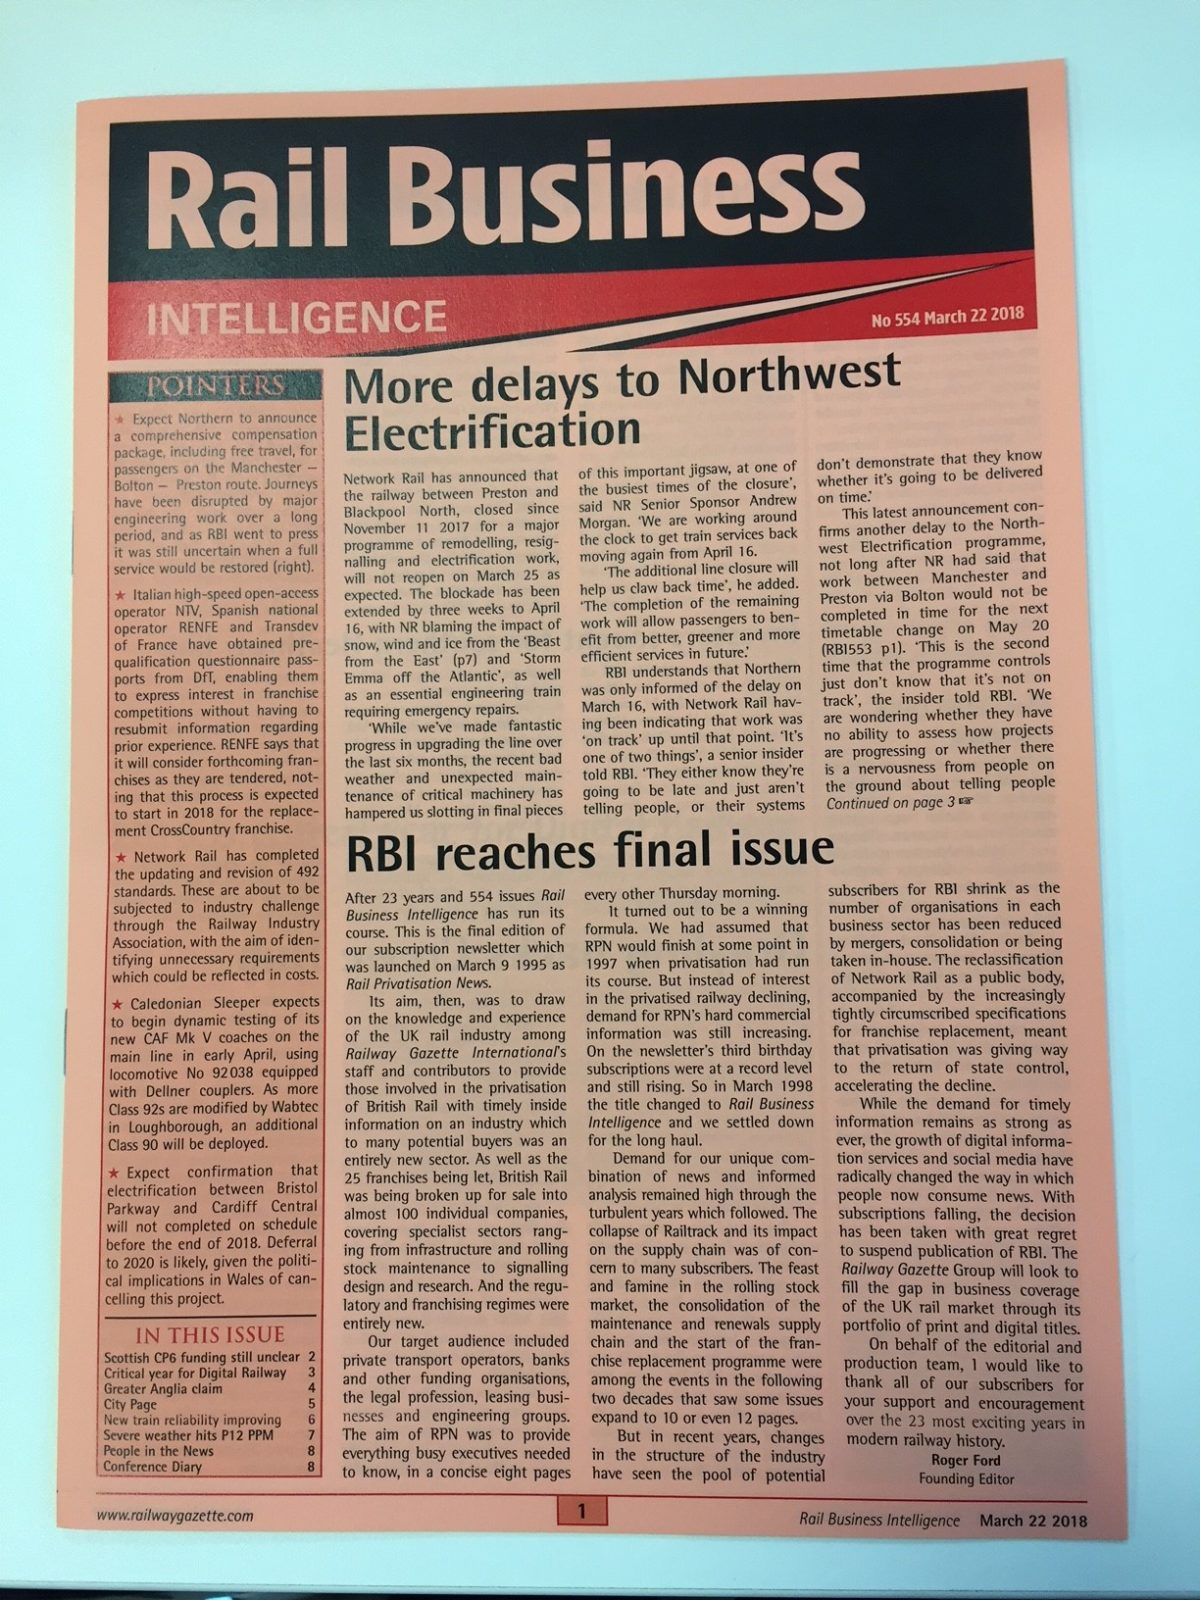 Print newsletter Rail Business Intelligence closes after 23 years as subscriptions fall in face of digital disruption